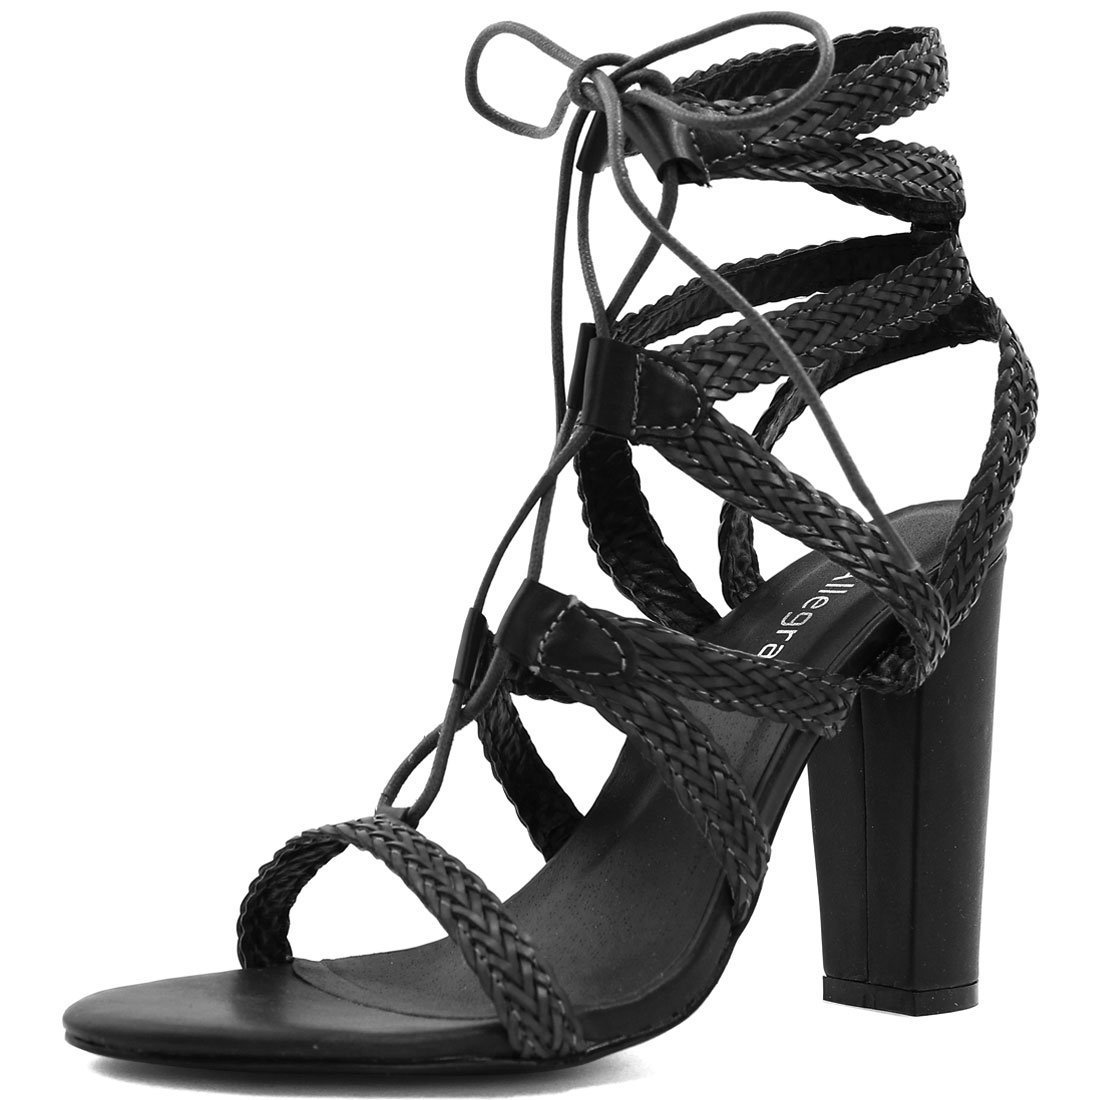 Woman Chunky Heel Braided Strappy Lace-Up Sandals Black US 9.5